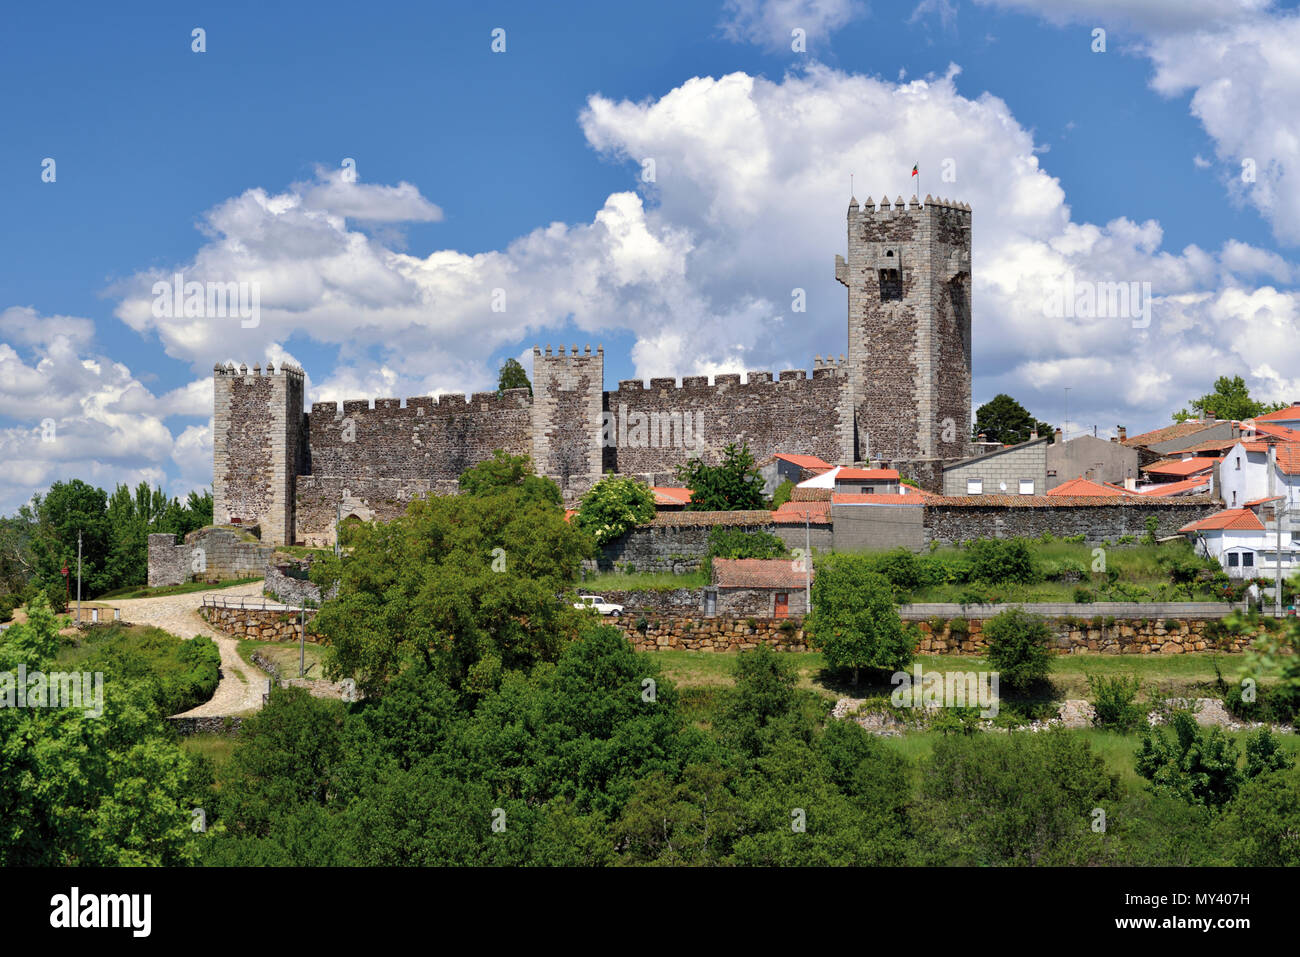 View to medieval castle with white couds in front of babyblue sky - Stock Image